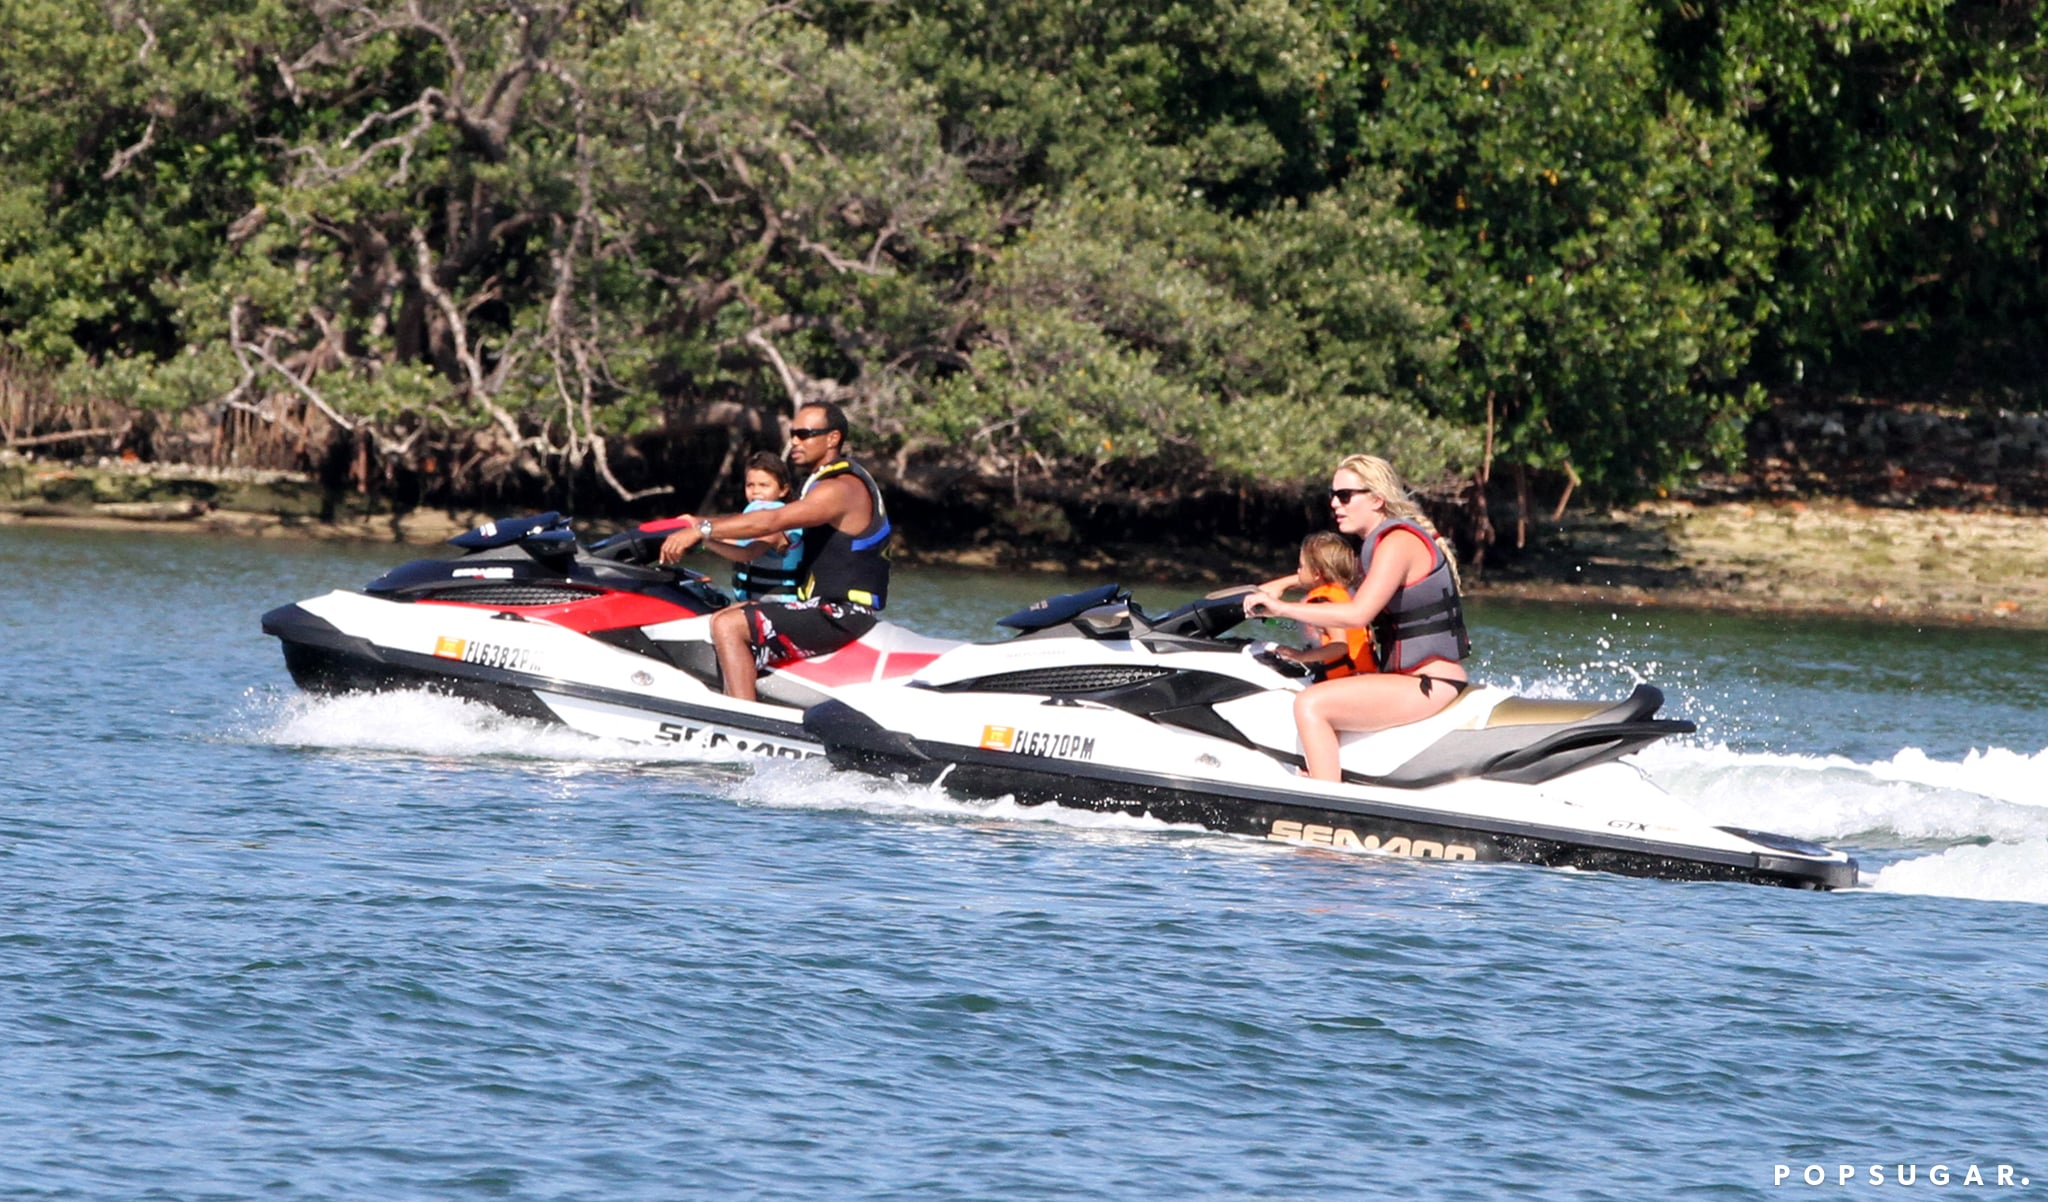 Lindsey Vonn and Tiger Woods took his kids, Sam and Charlie, for a ride on jet skis in Palm Beach on Sunday.